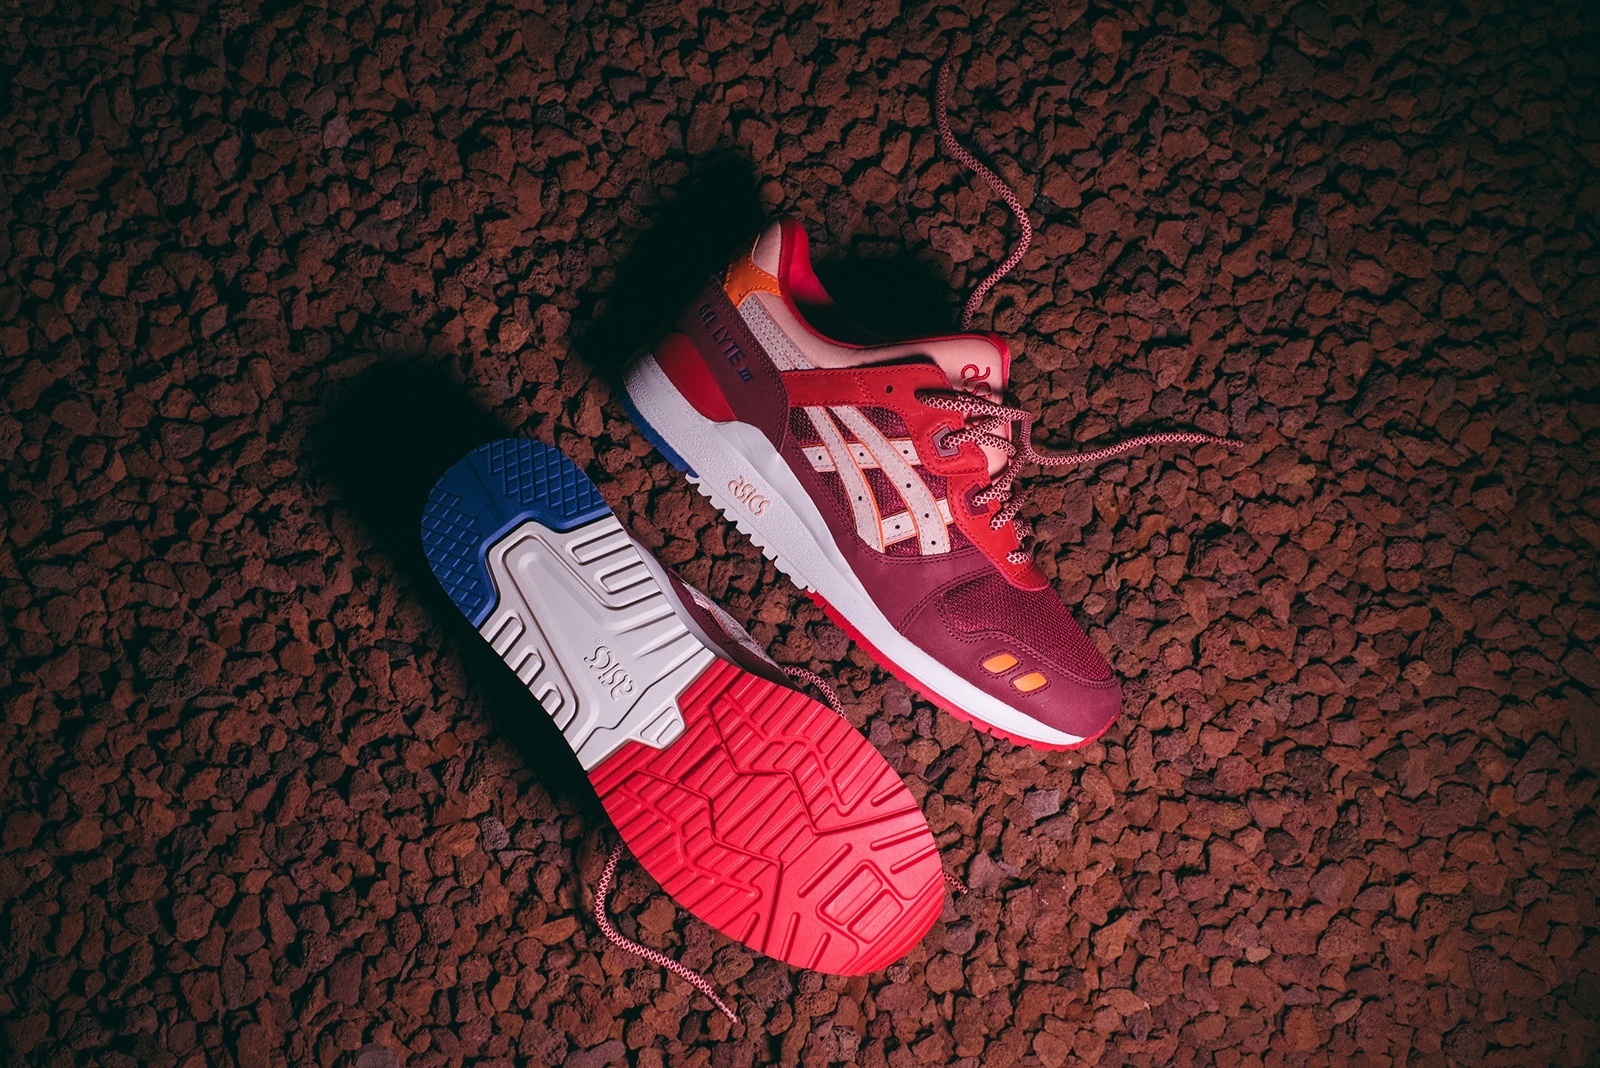 ronnie-fieg-asics-volcano-2-0-collection-3